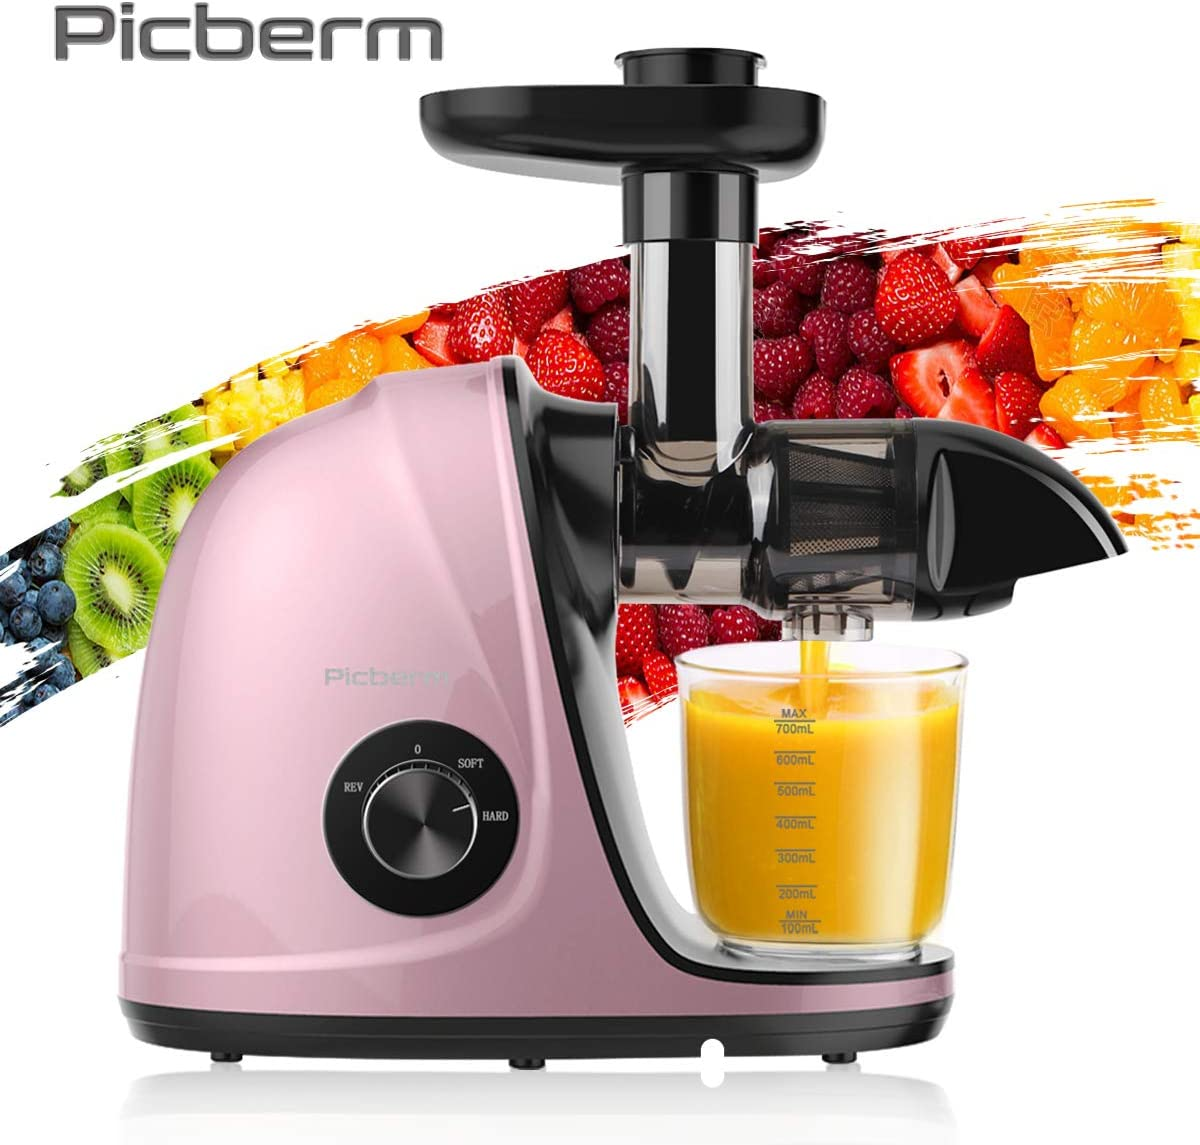 Juicer Machine Quiet Motor Cold Press Extractor with Brush Recipes for Fruits and Vegetables Picberm PB2110A Slow Masticating Juicer for Nutrients Preservation Anti-Clogging Easy to Clean Black